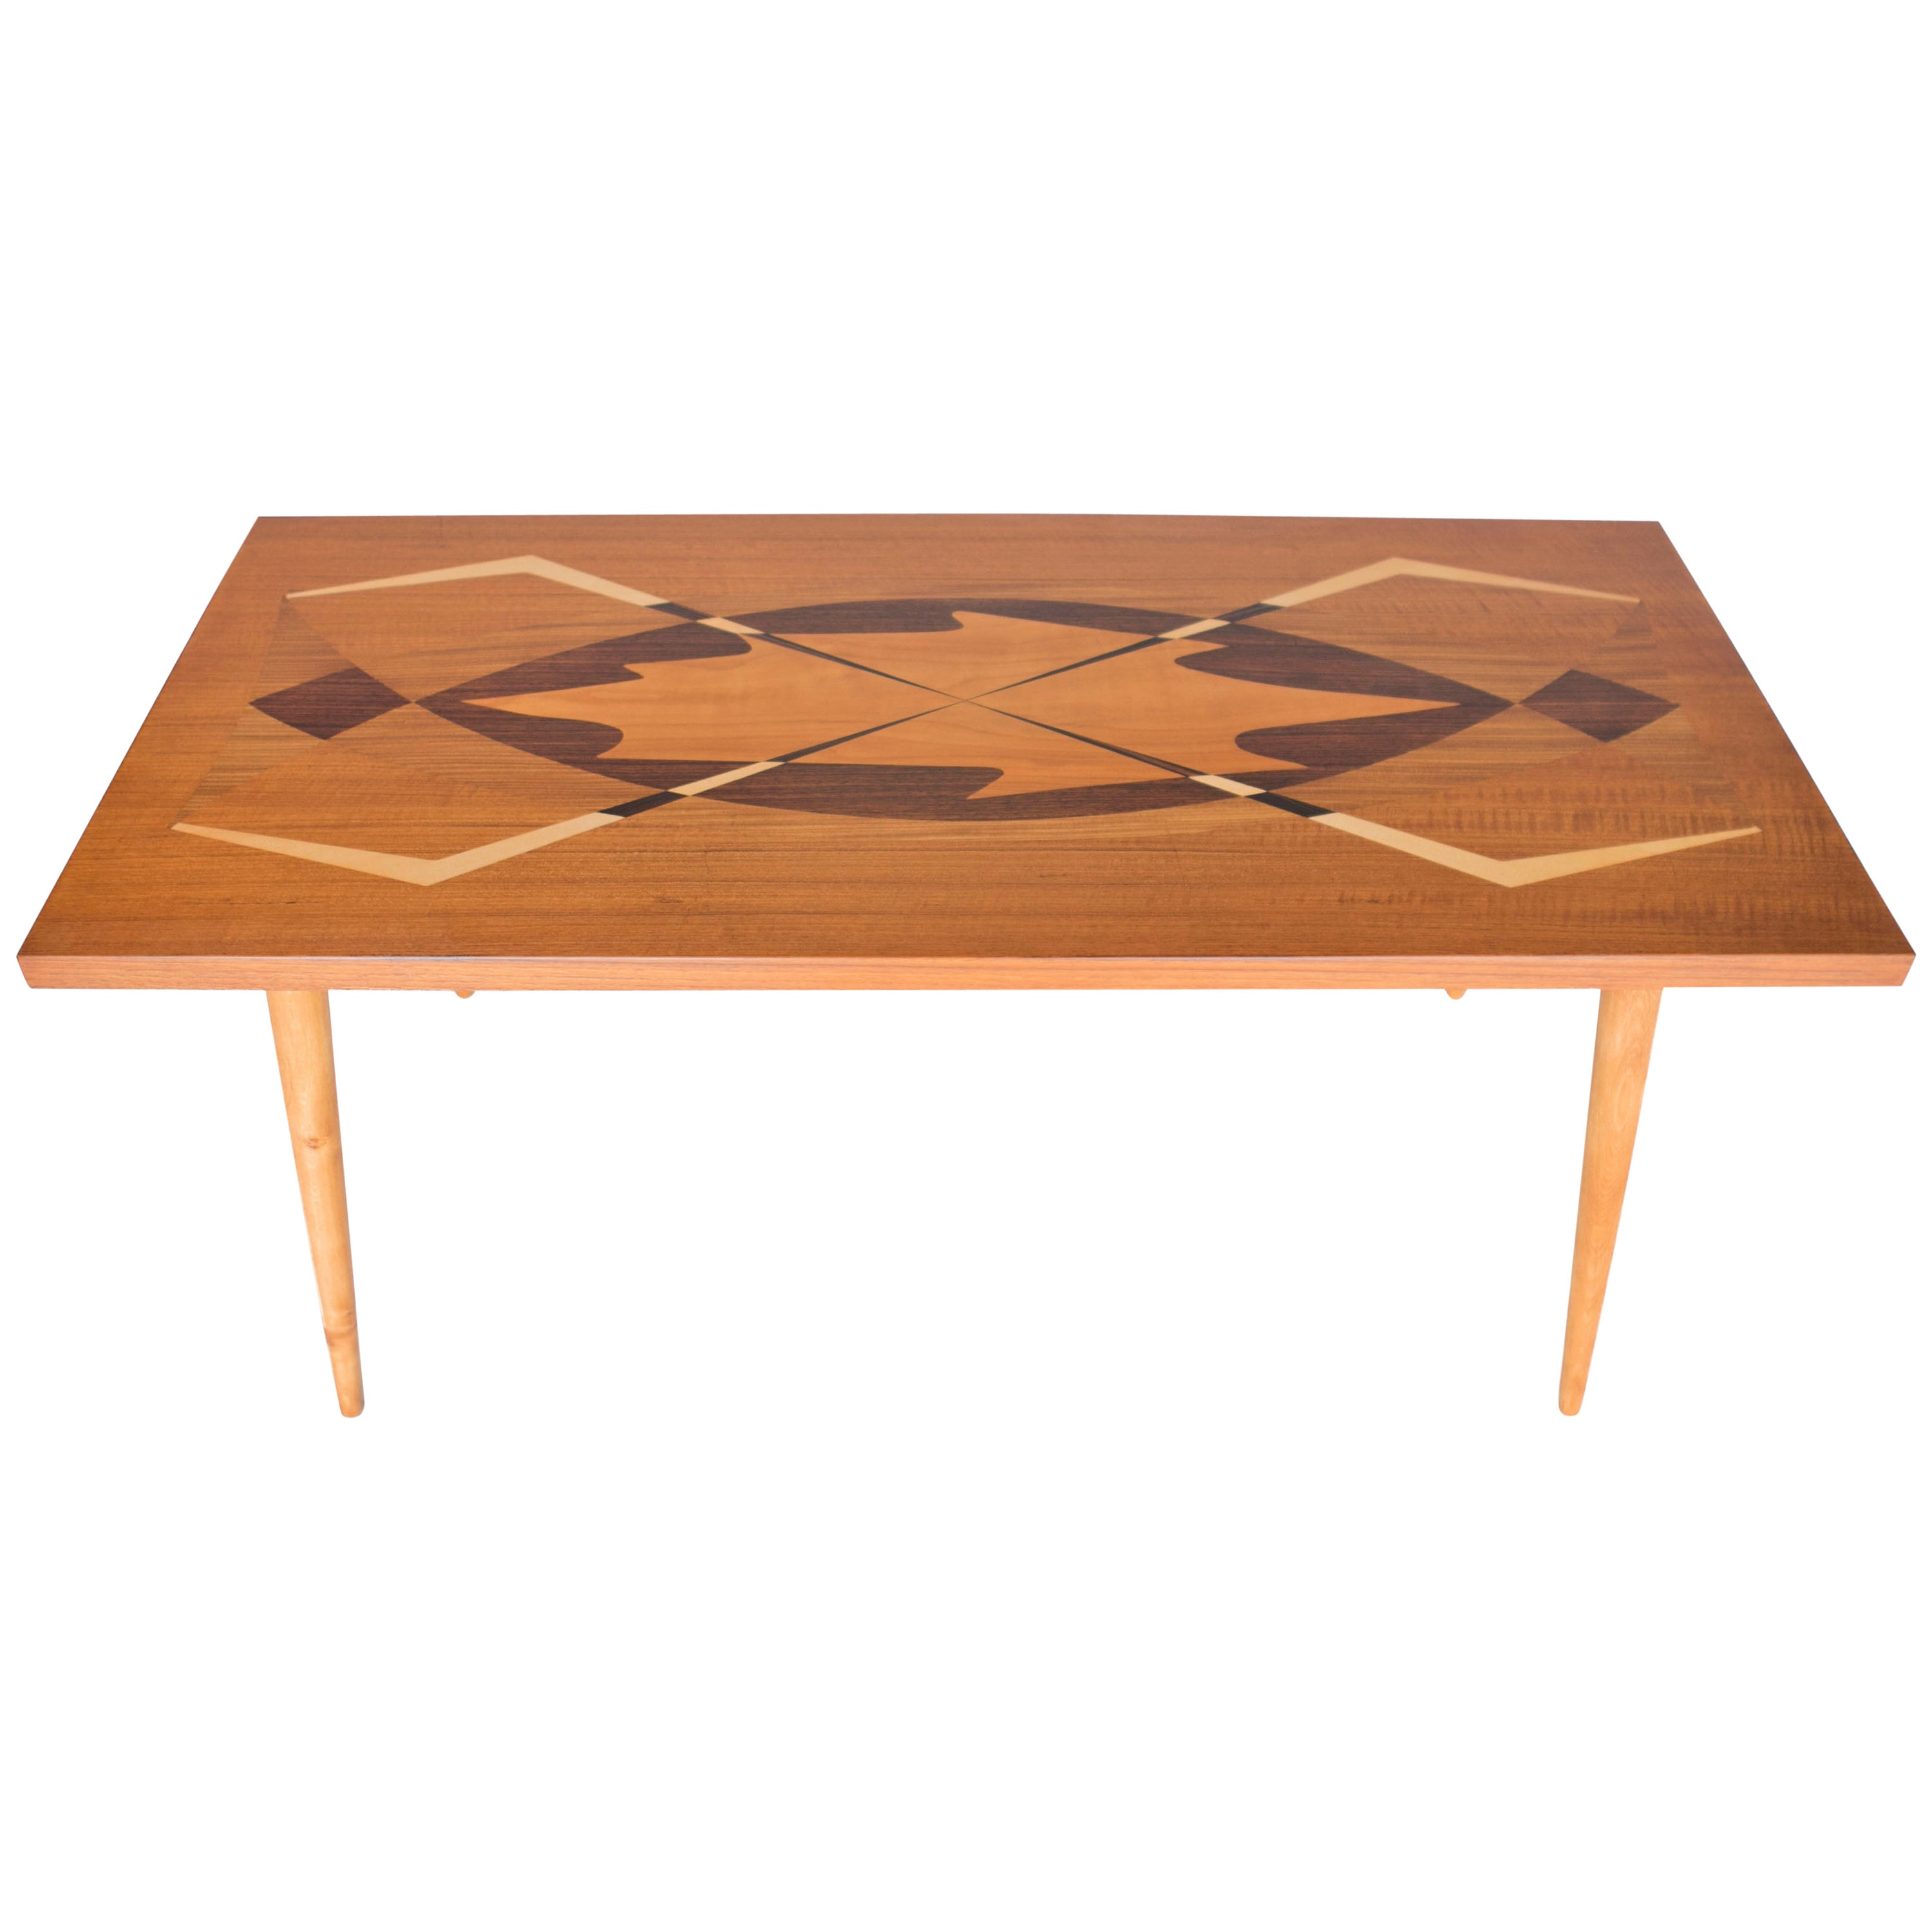 Swedish Modern Coffee Table with Exotic Wood Inlay, Sweden, 1950s